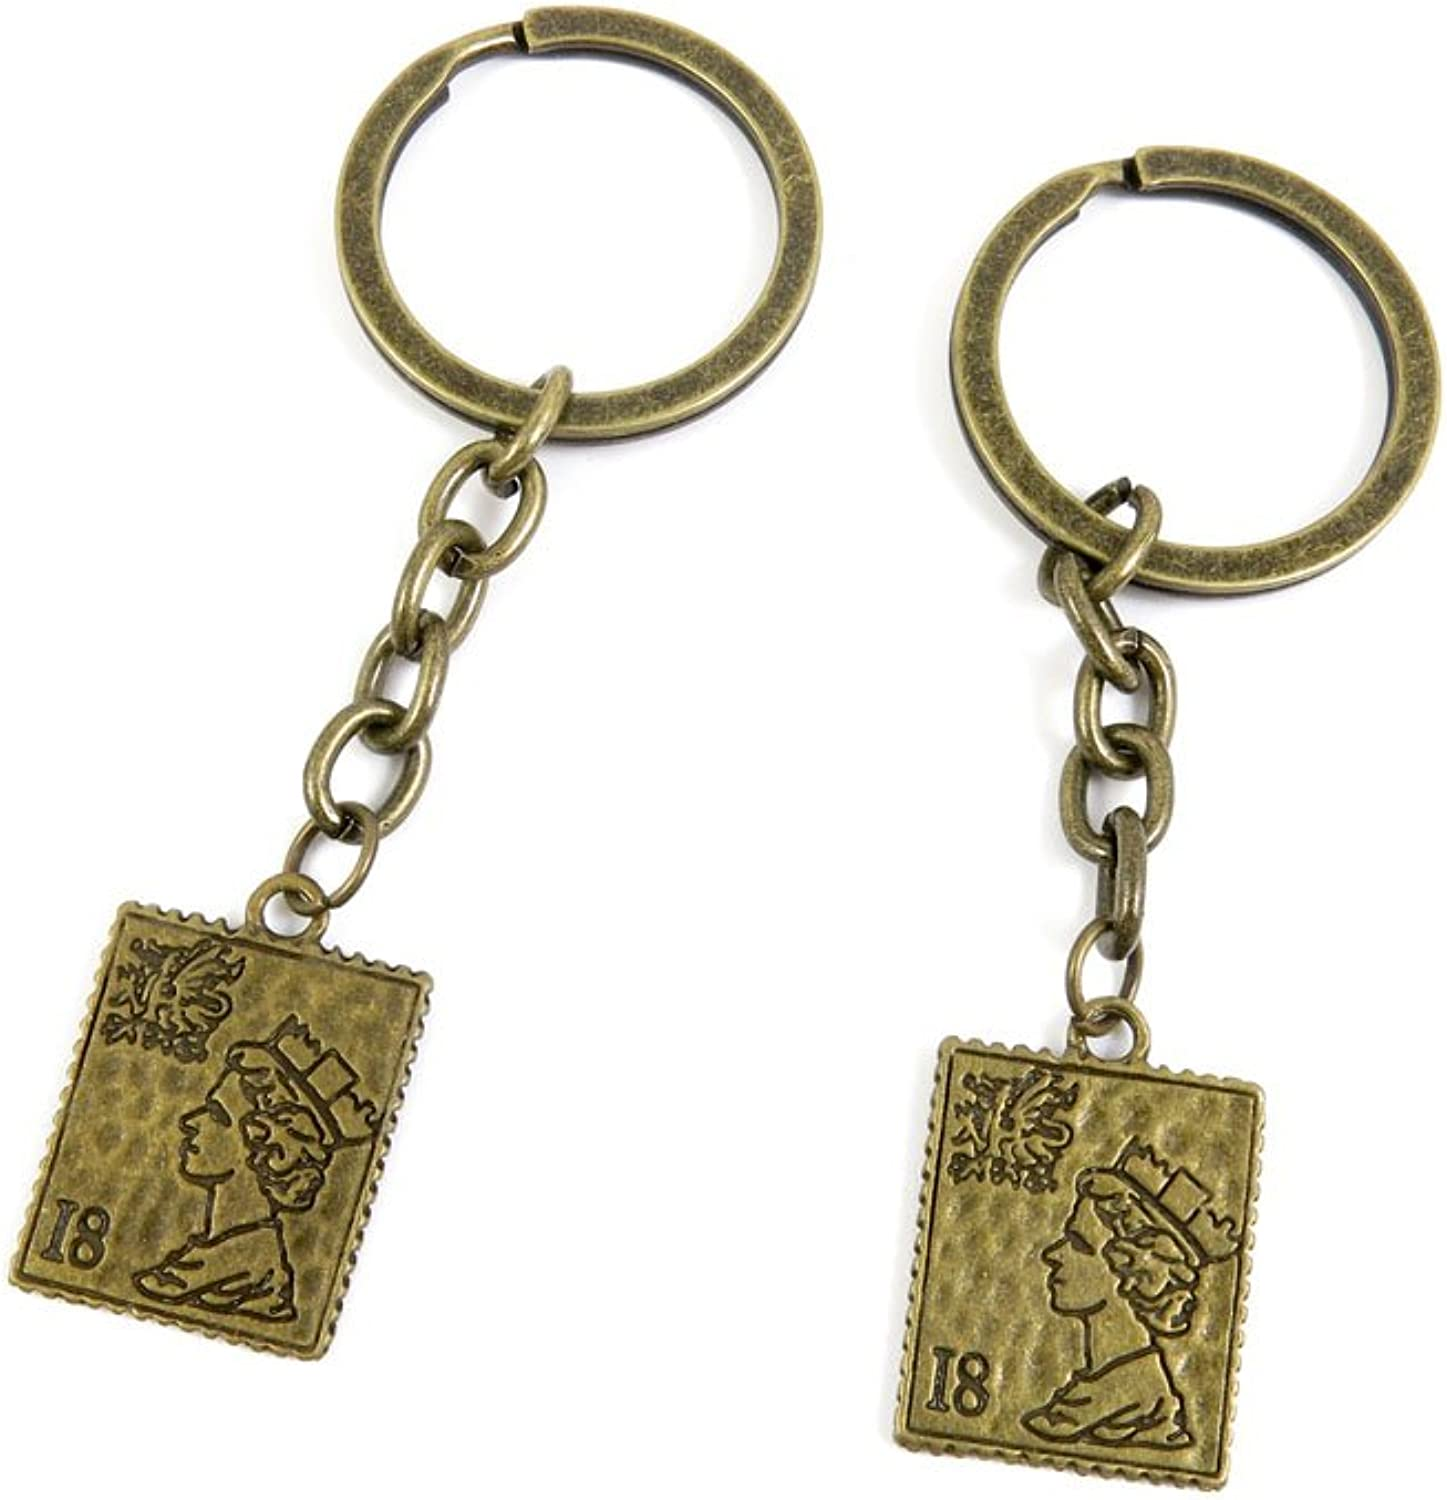 100 PCS Keyrings Keychains Key Ring Chains Tags Jewelry Findings Clasps Buckles Supplies K7KO5 Queen Stamp